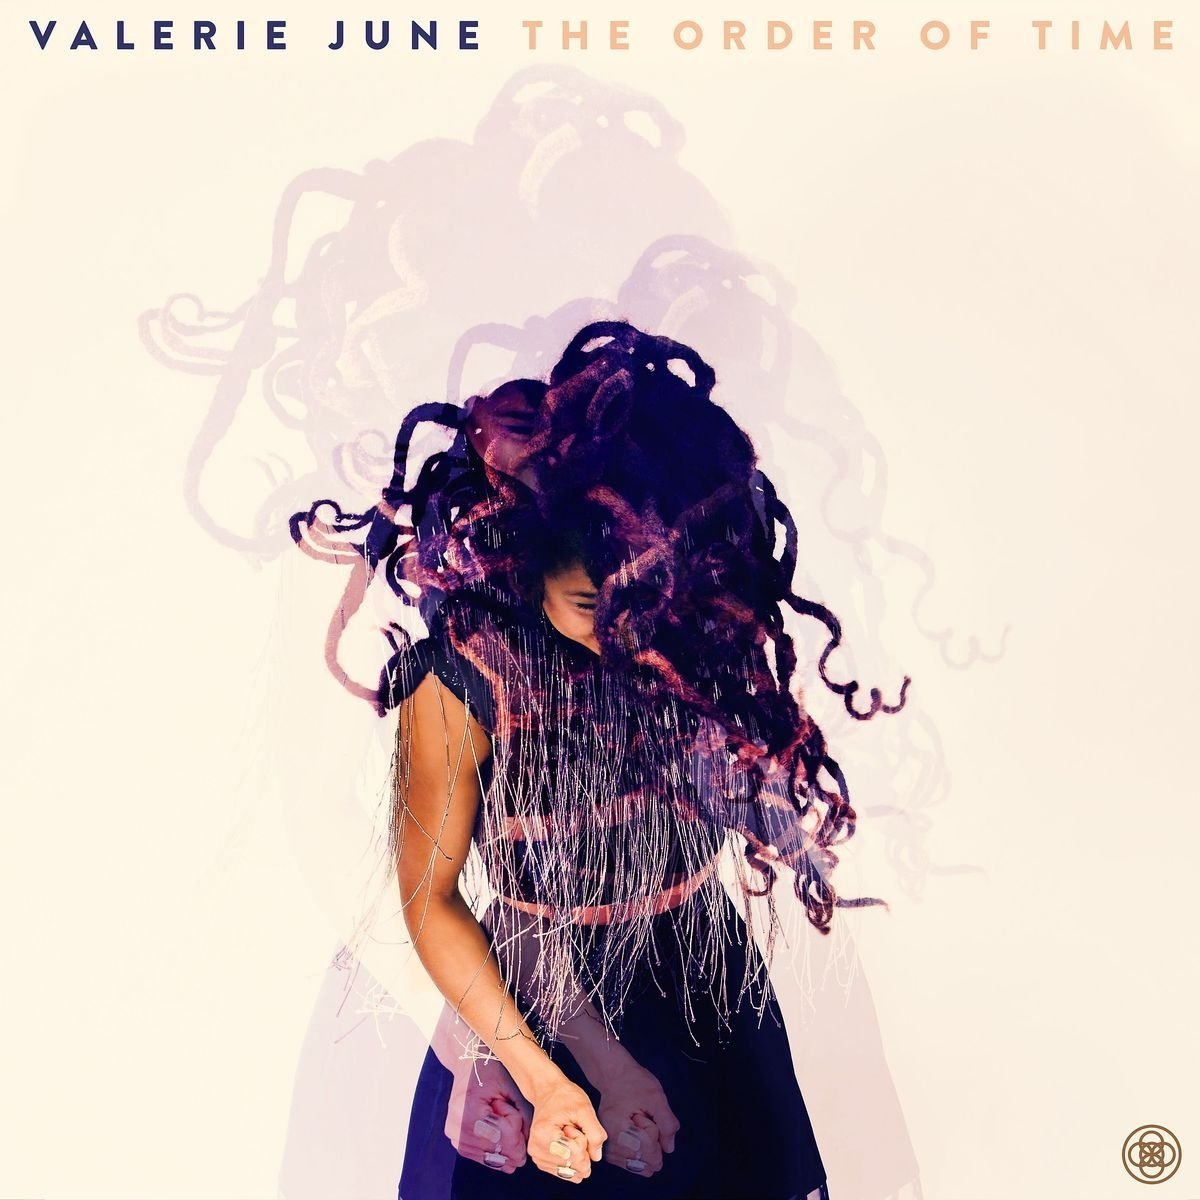 Valerie June, The Order of Time